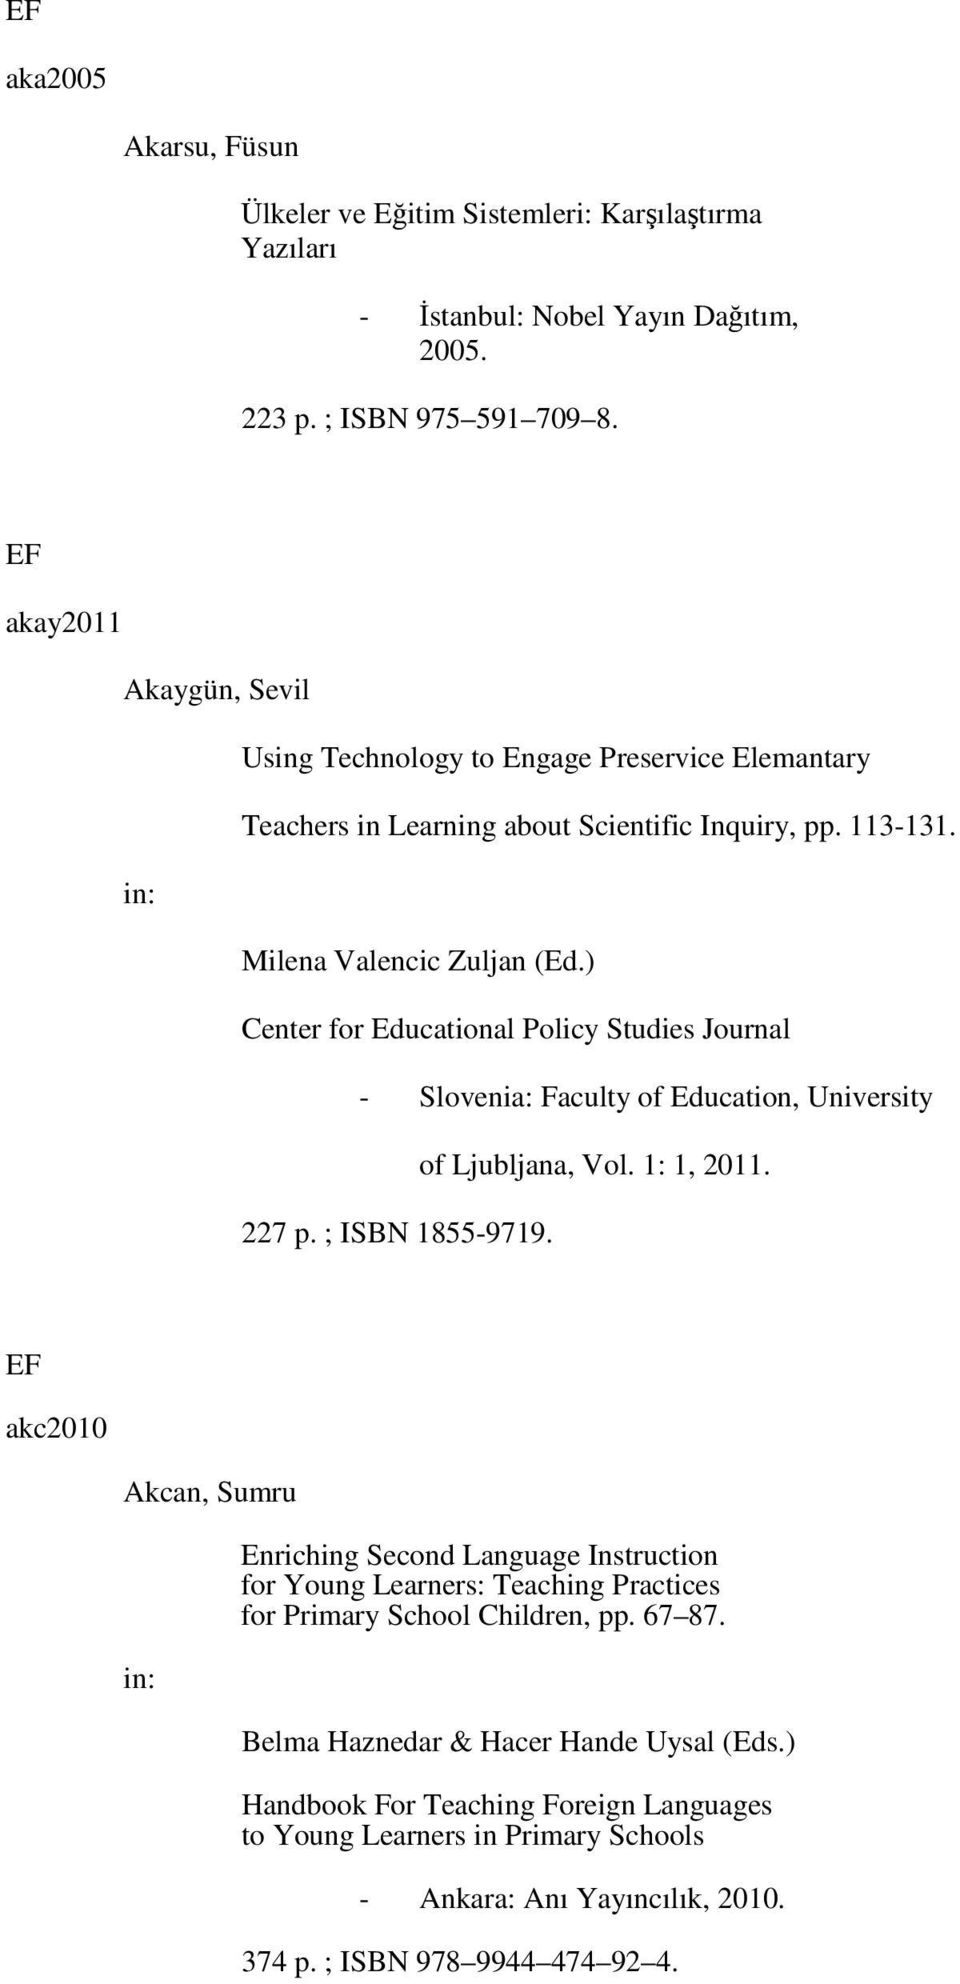 ) Center for Educational Policy Studies Journal - Slovenia: Faculty of Education, University of Ljubljana, Vol. 1: 1, 2011. 227 p. ; ISBN 1855-9719.